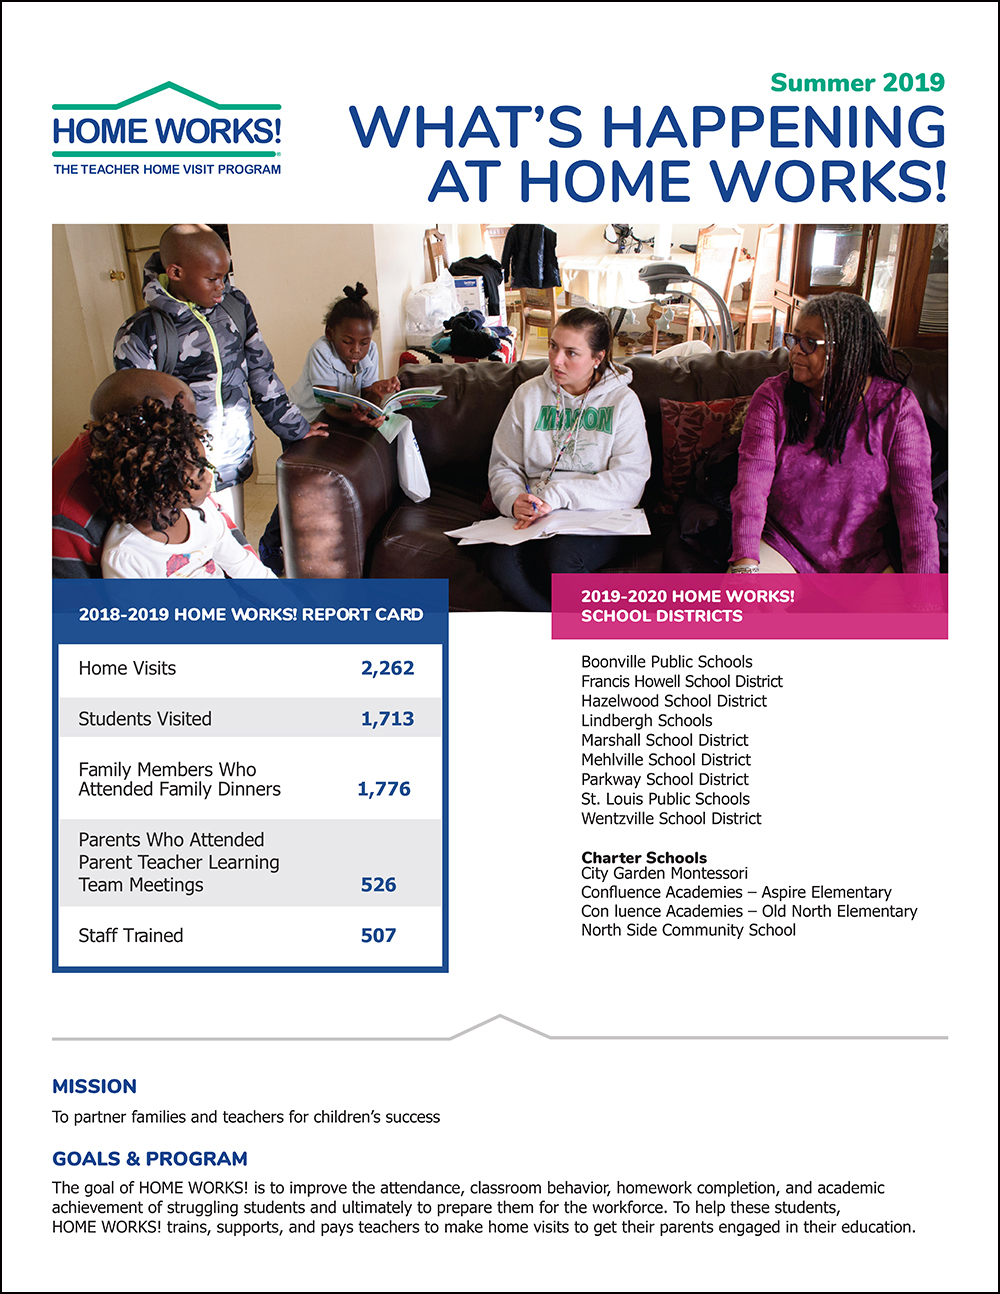 HOME WORKS! summer 2019 newsletter cover